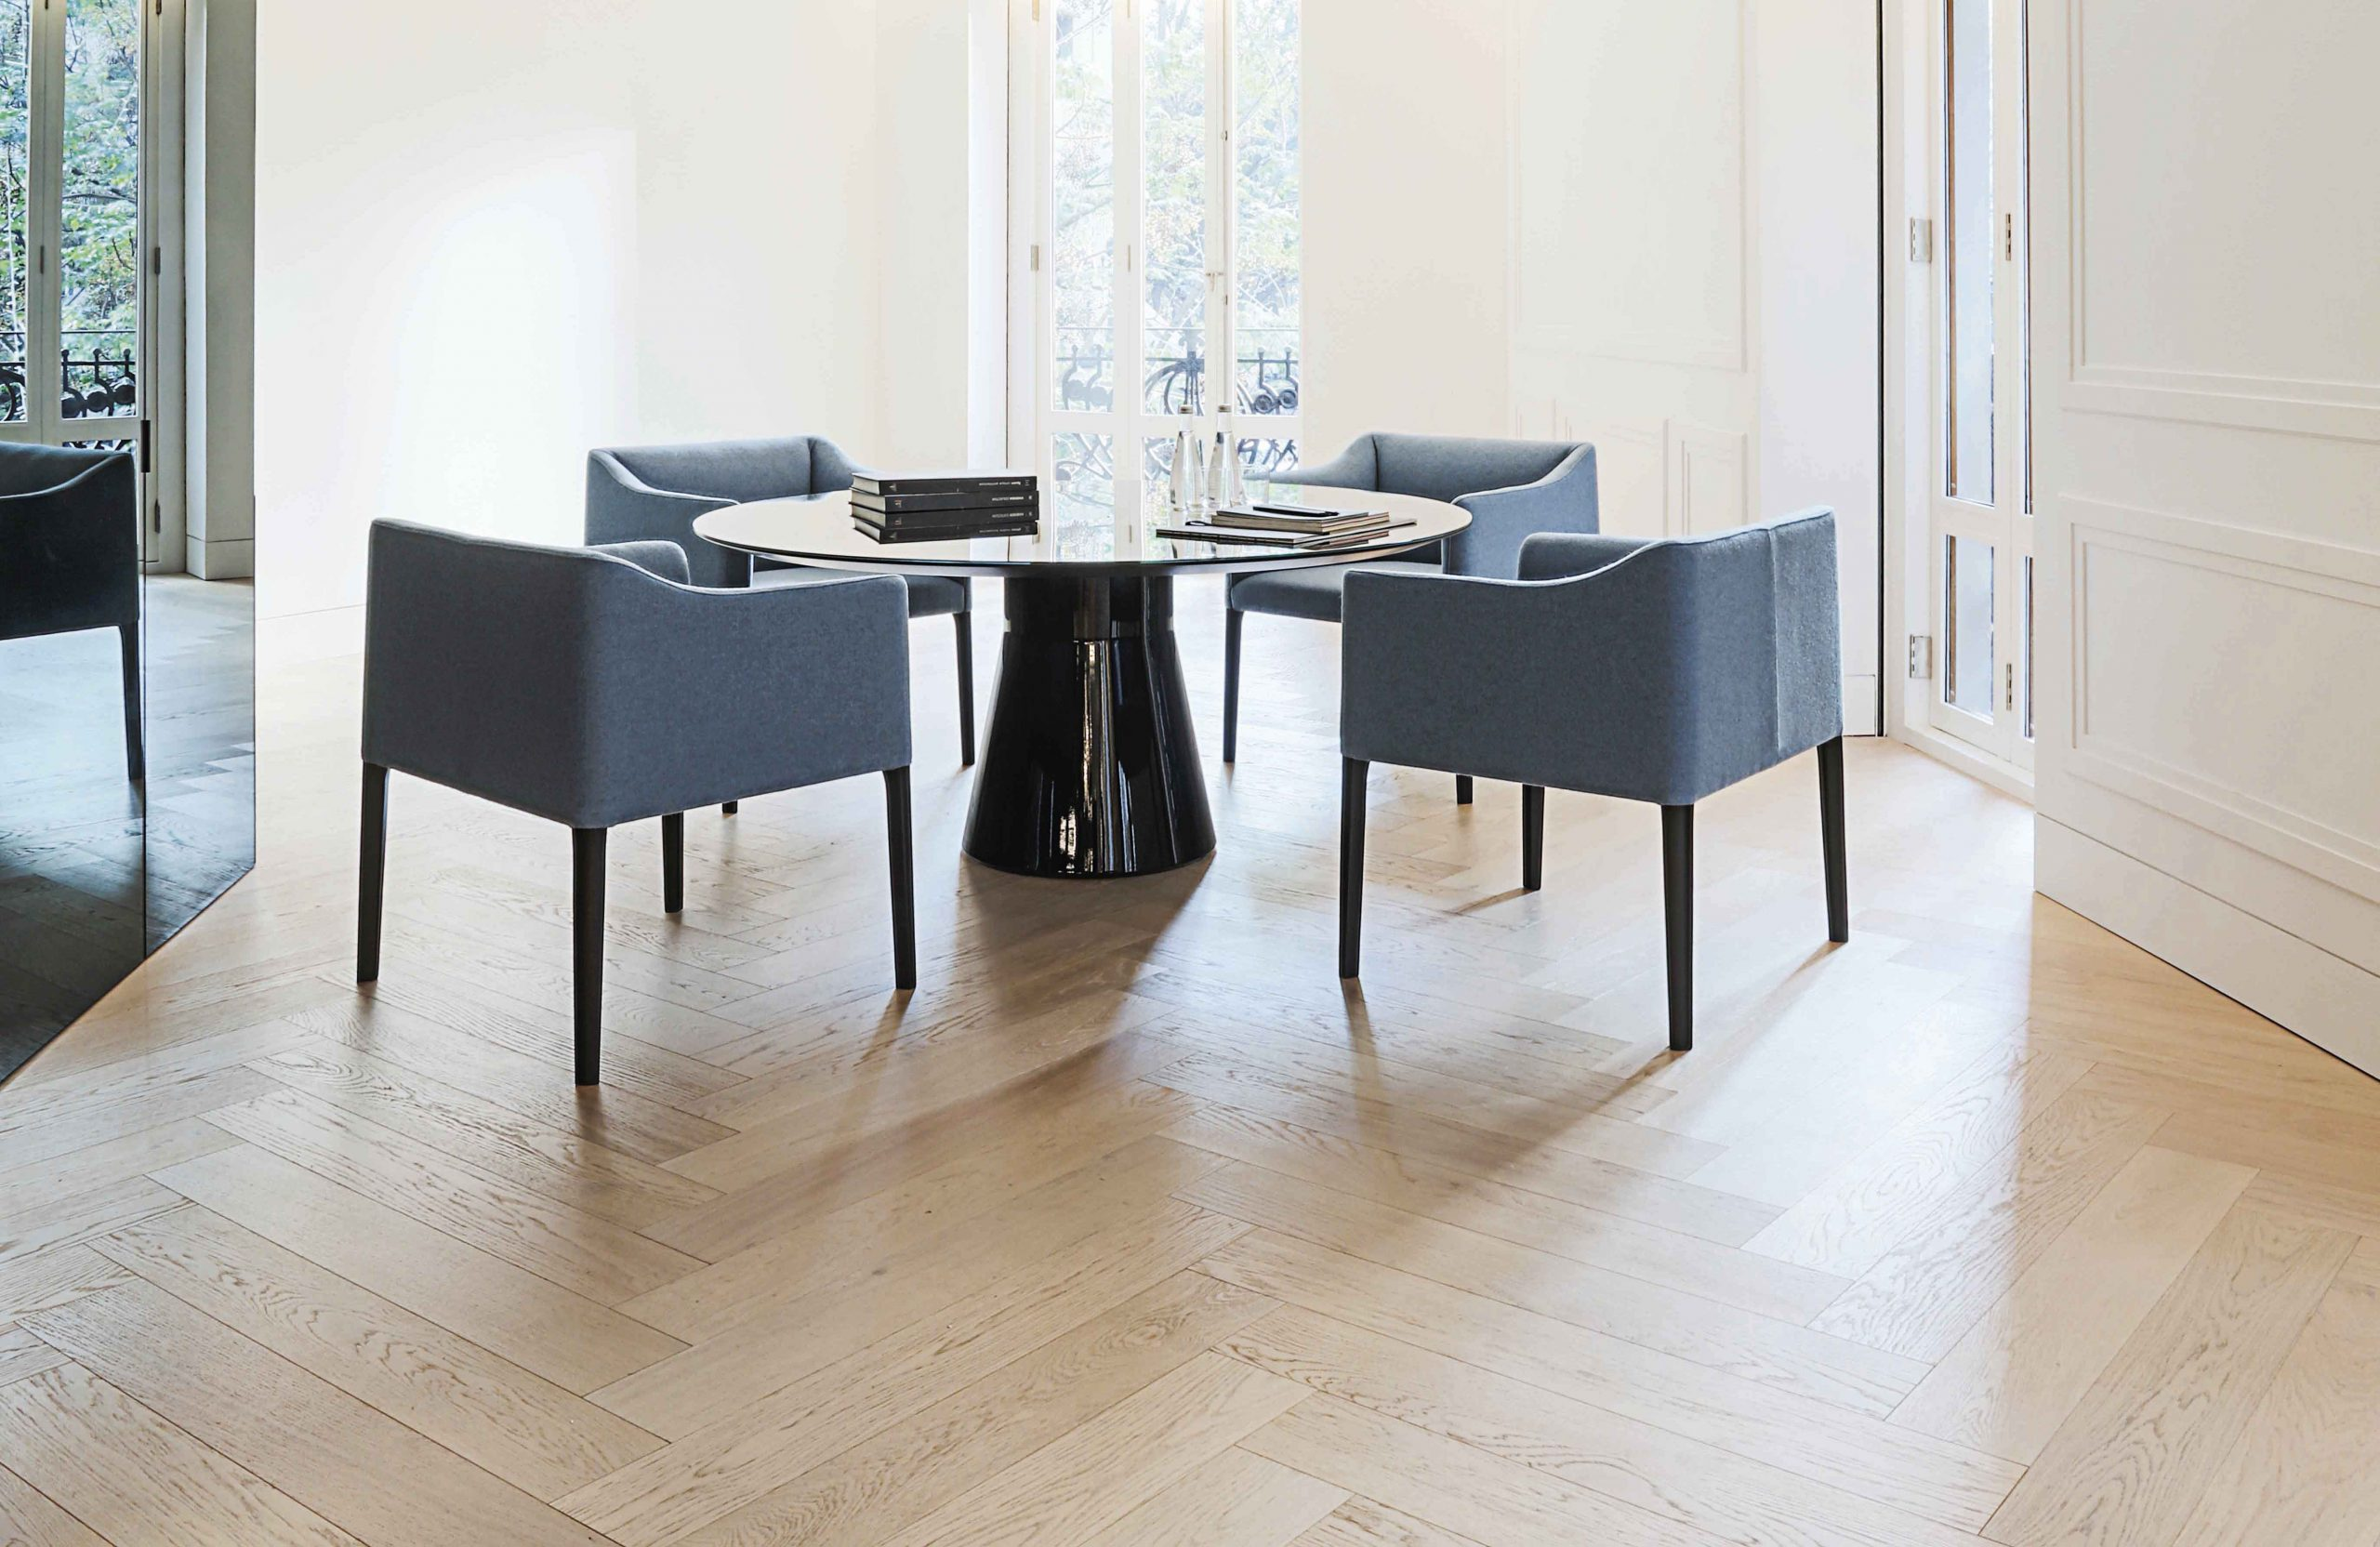 couve-chair-andreu-world-1-scaled